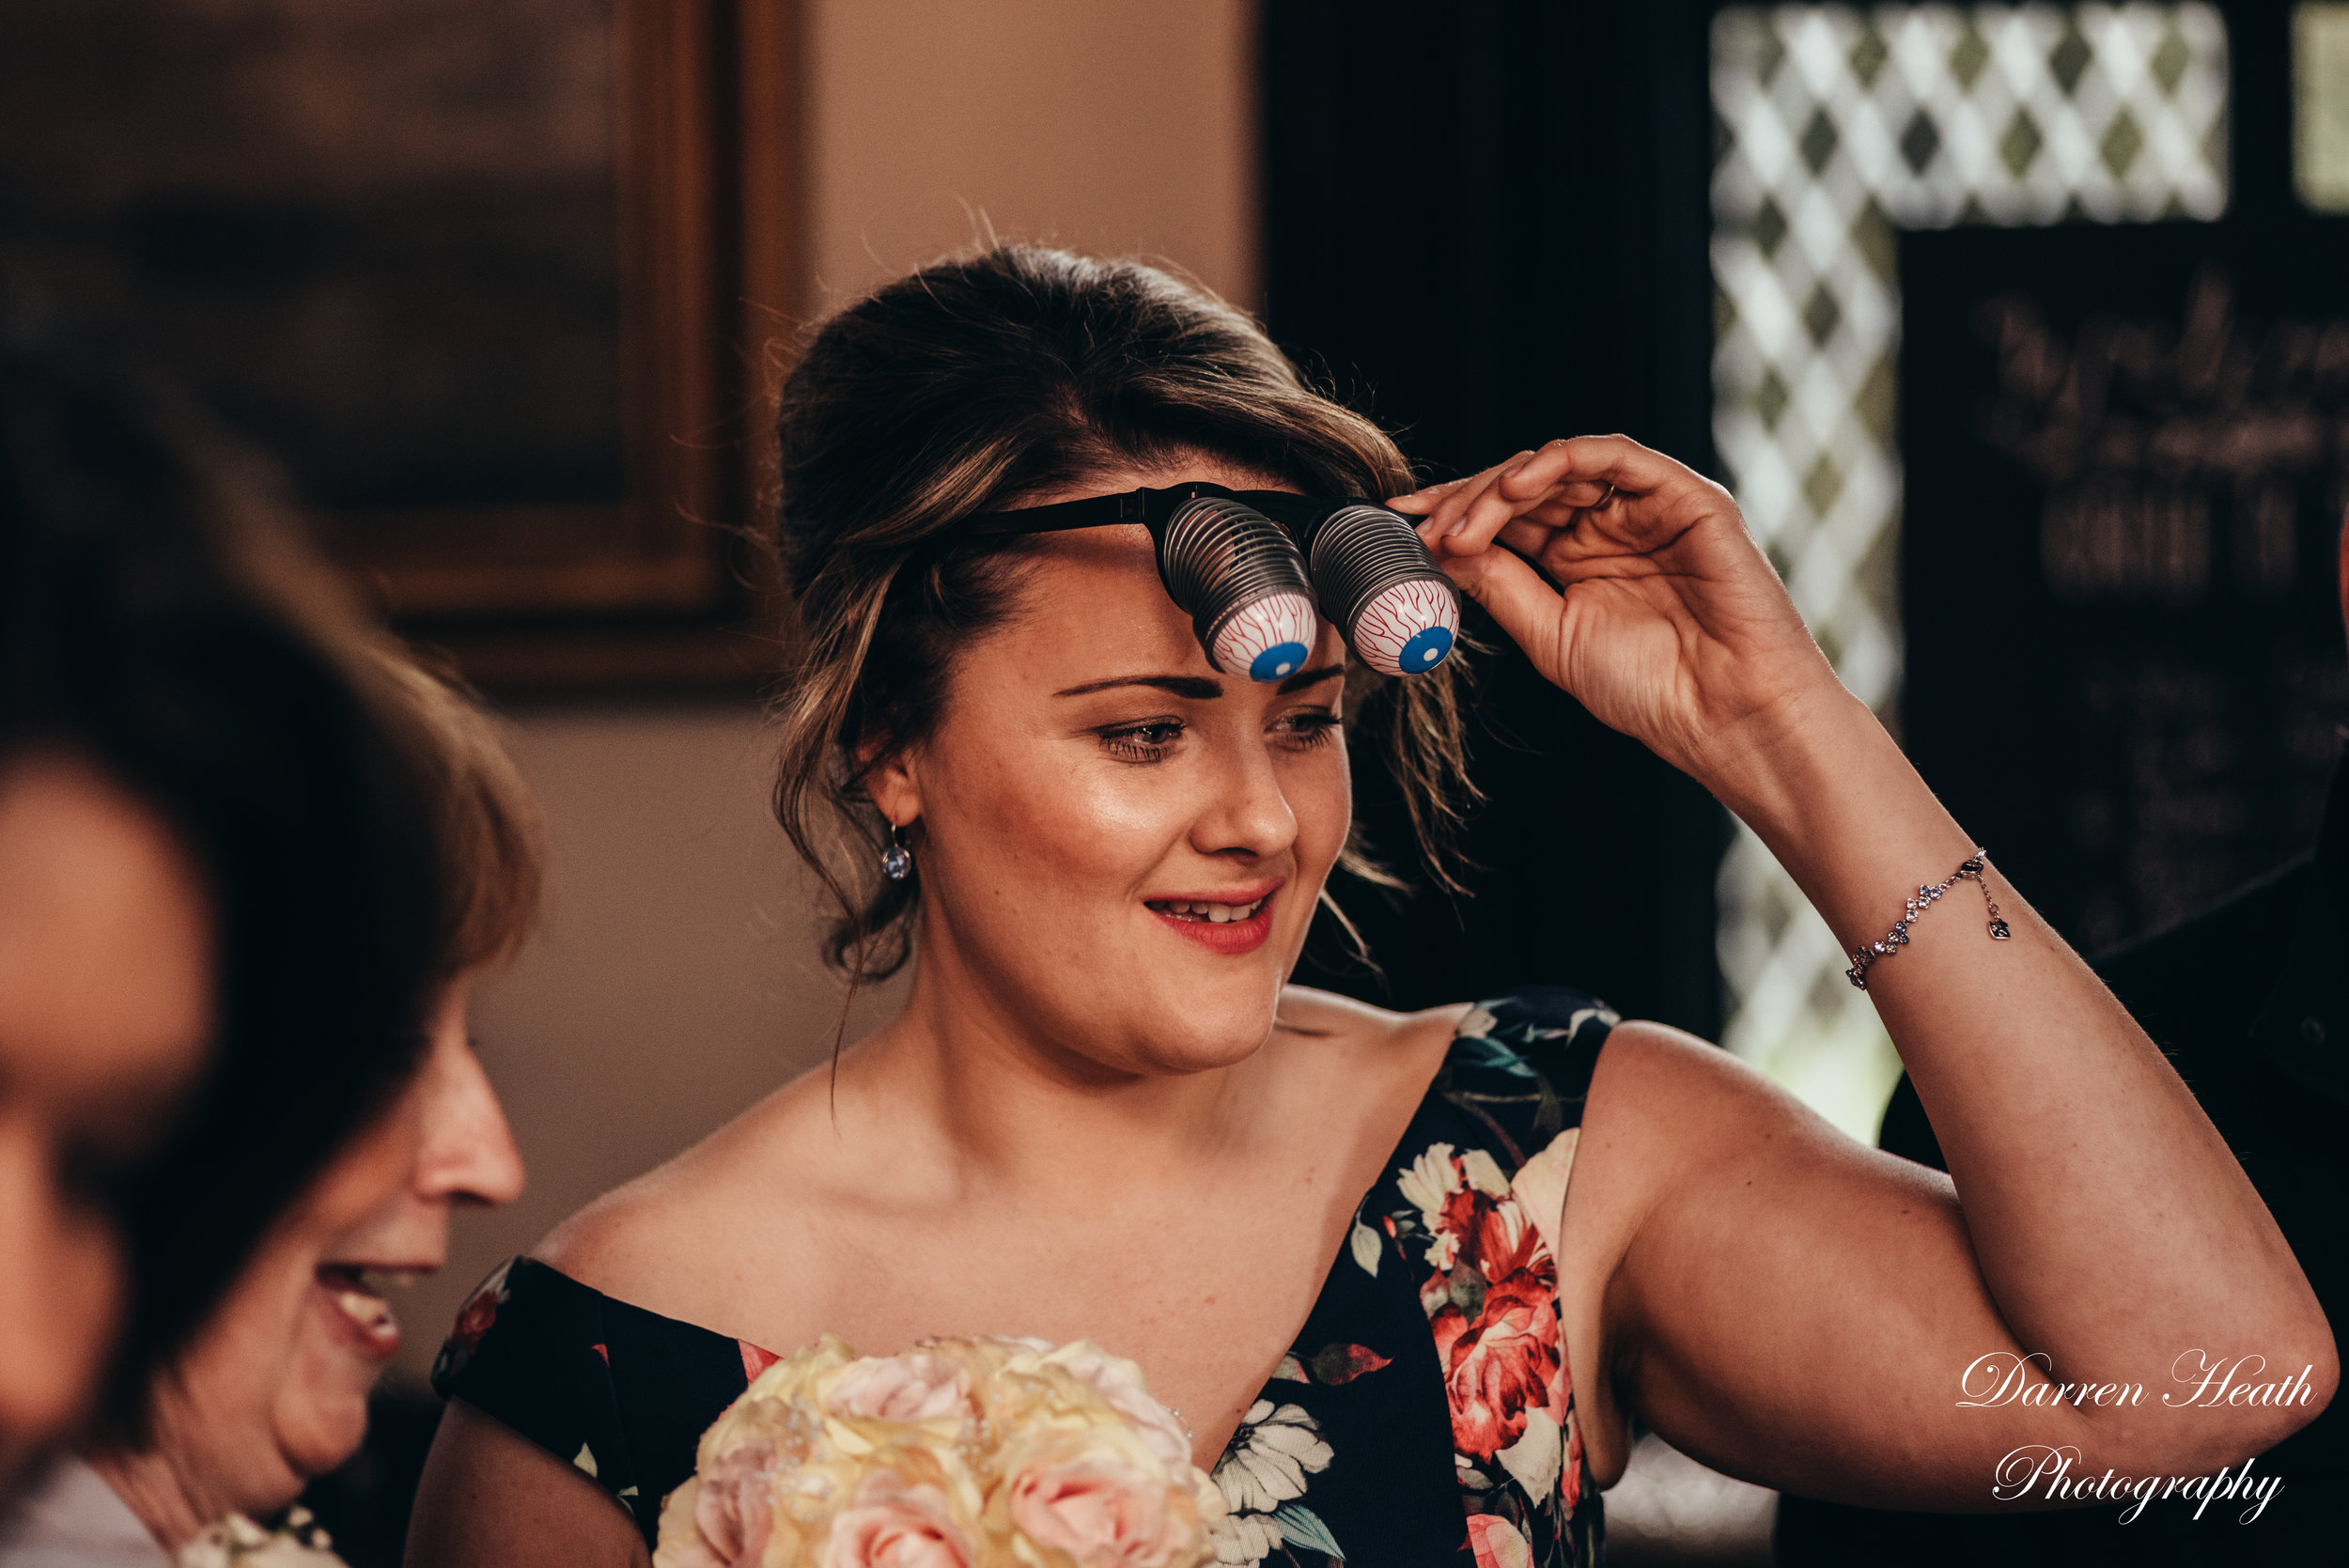 Google Eye props worn by a wedding guest